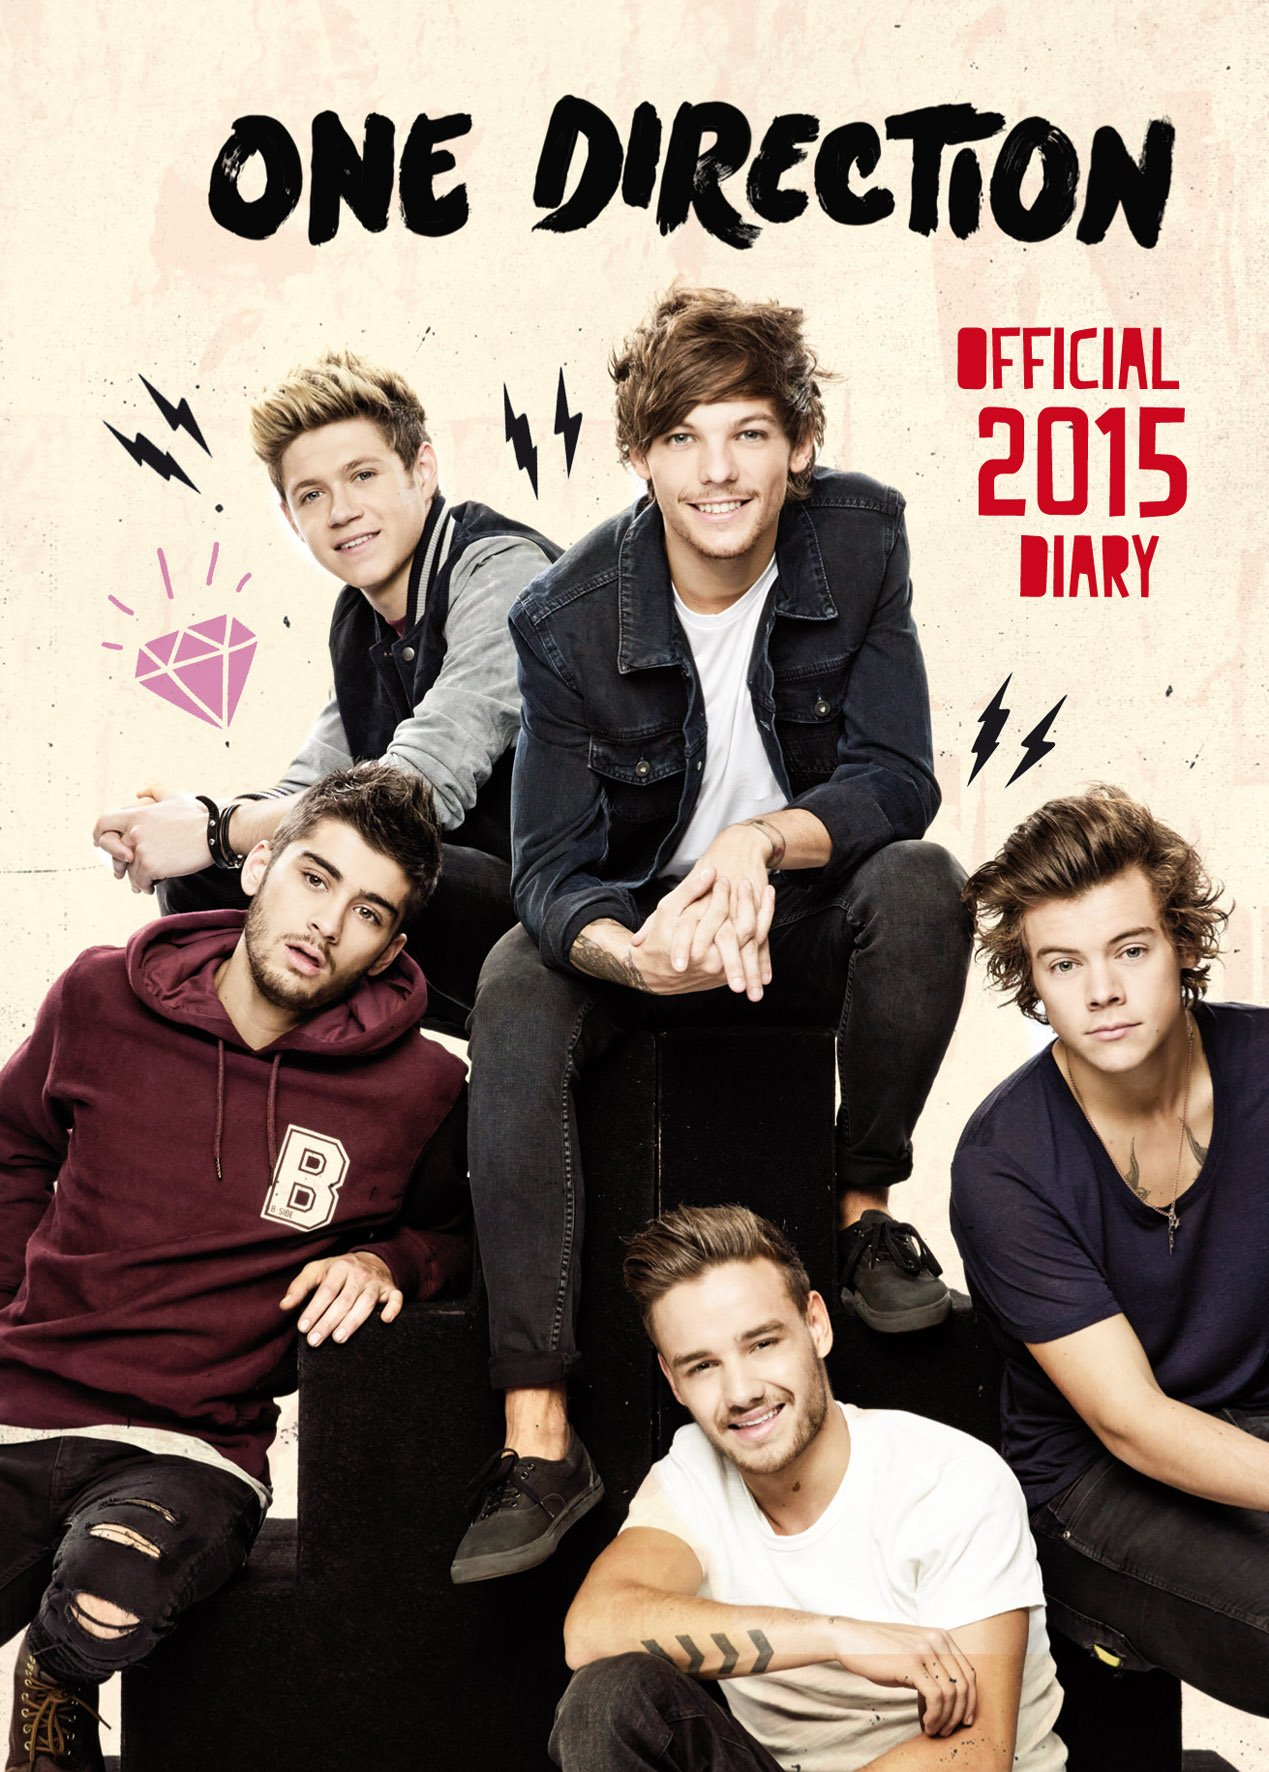 download one direction mp3 songs